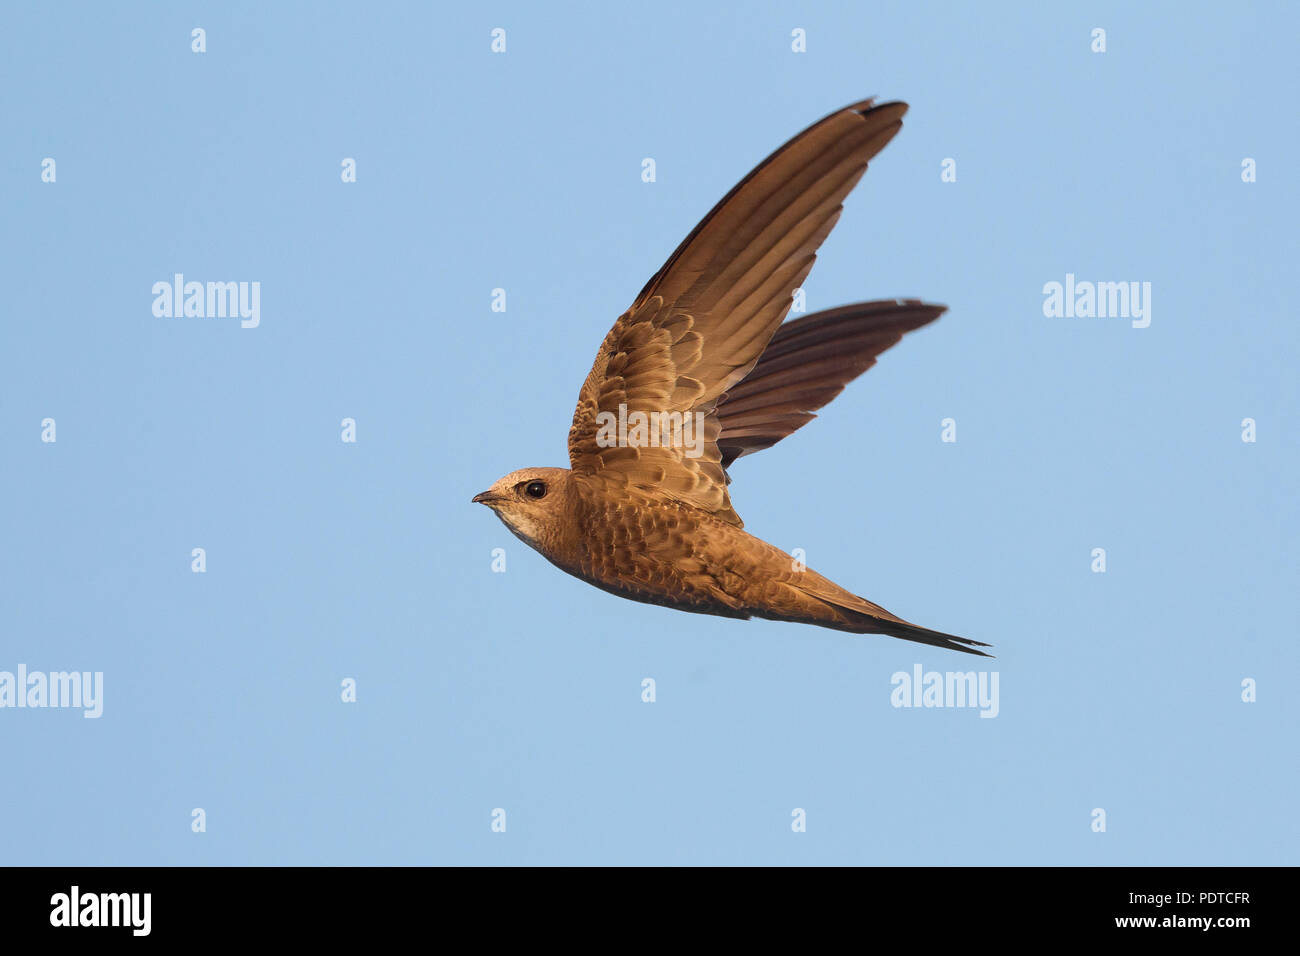 Pallid Swift flying. - Stock Image